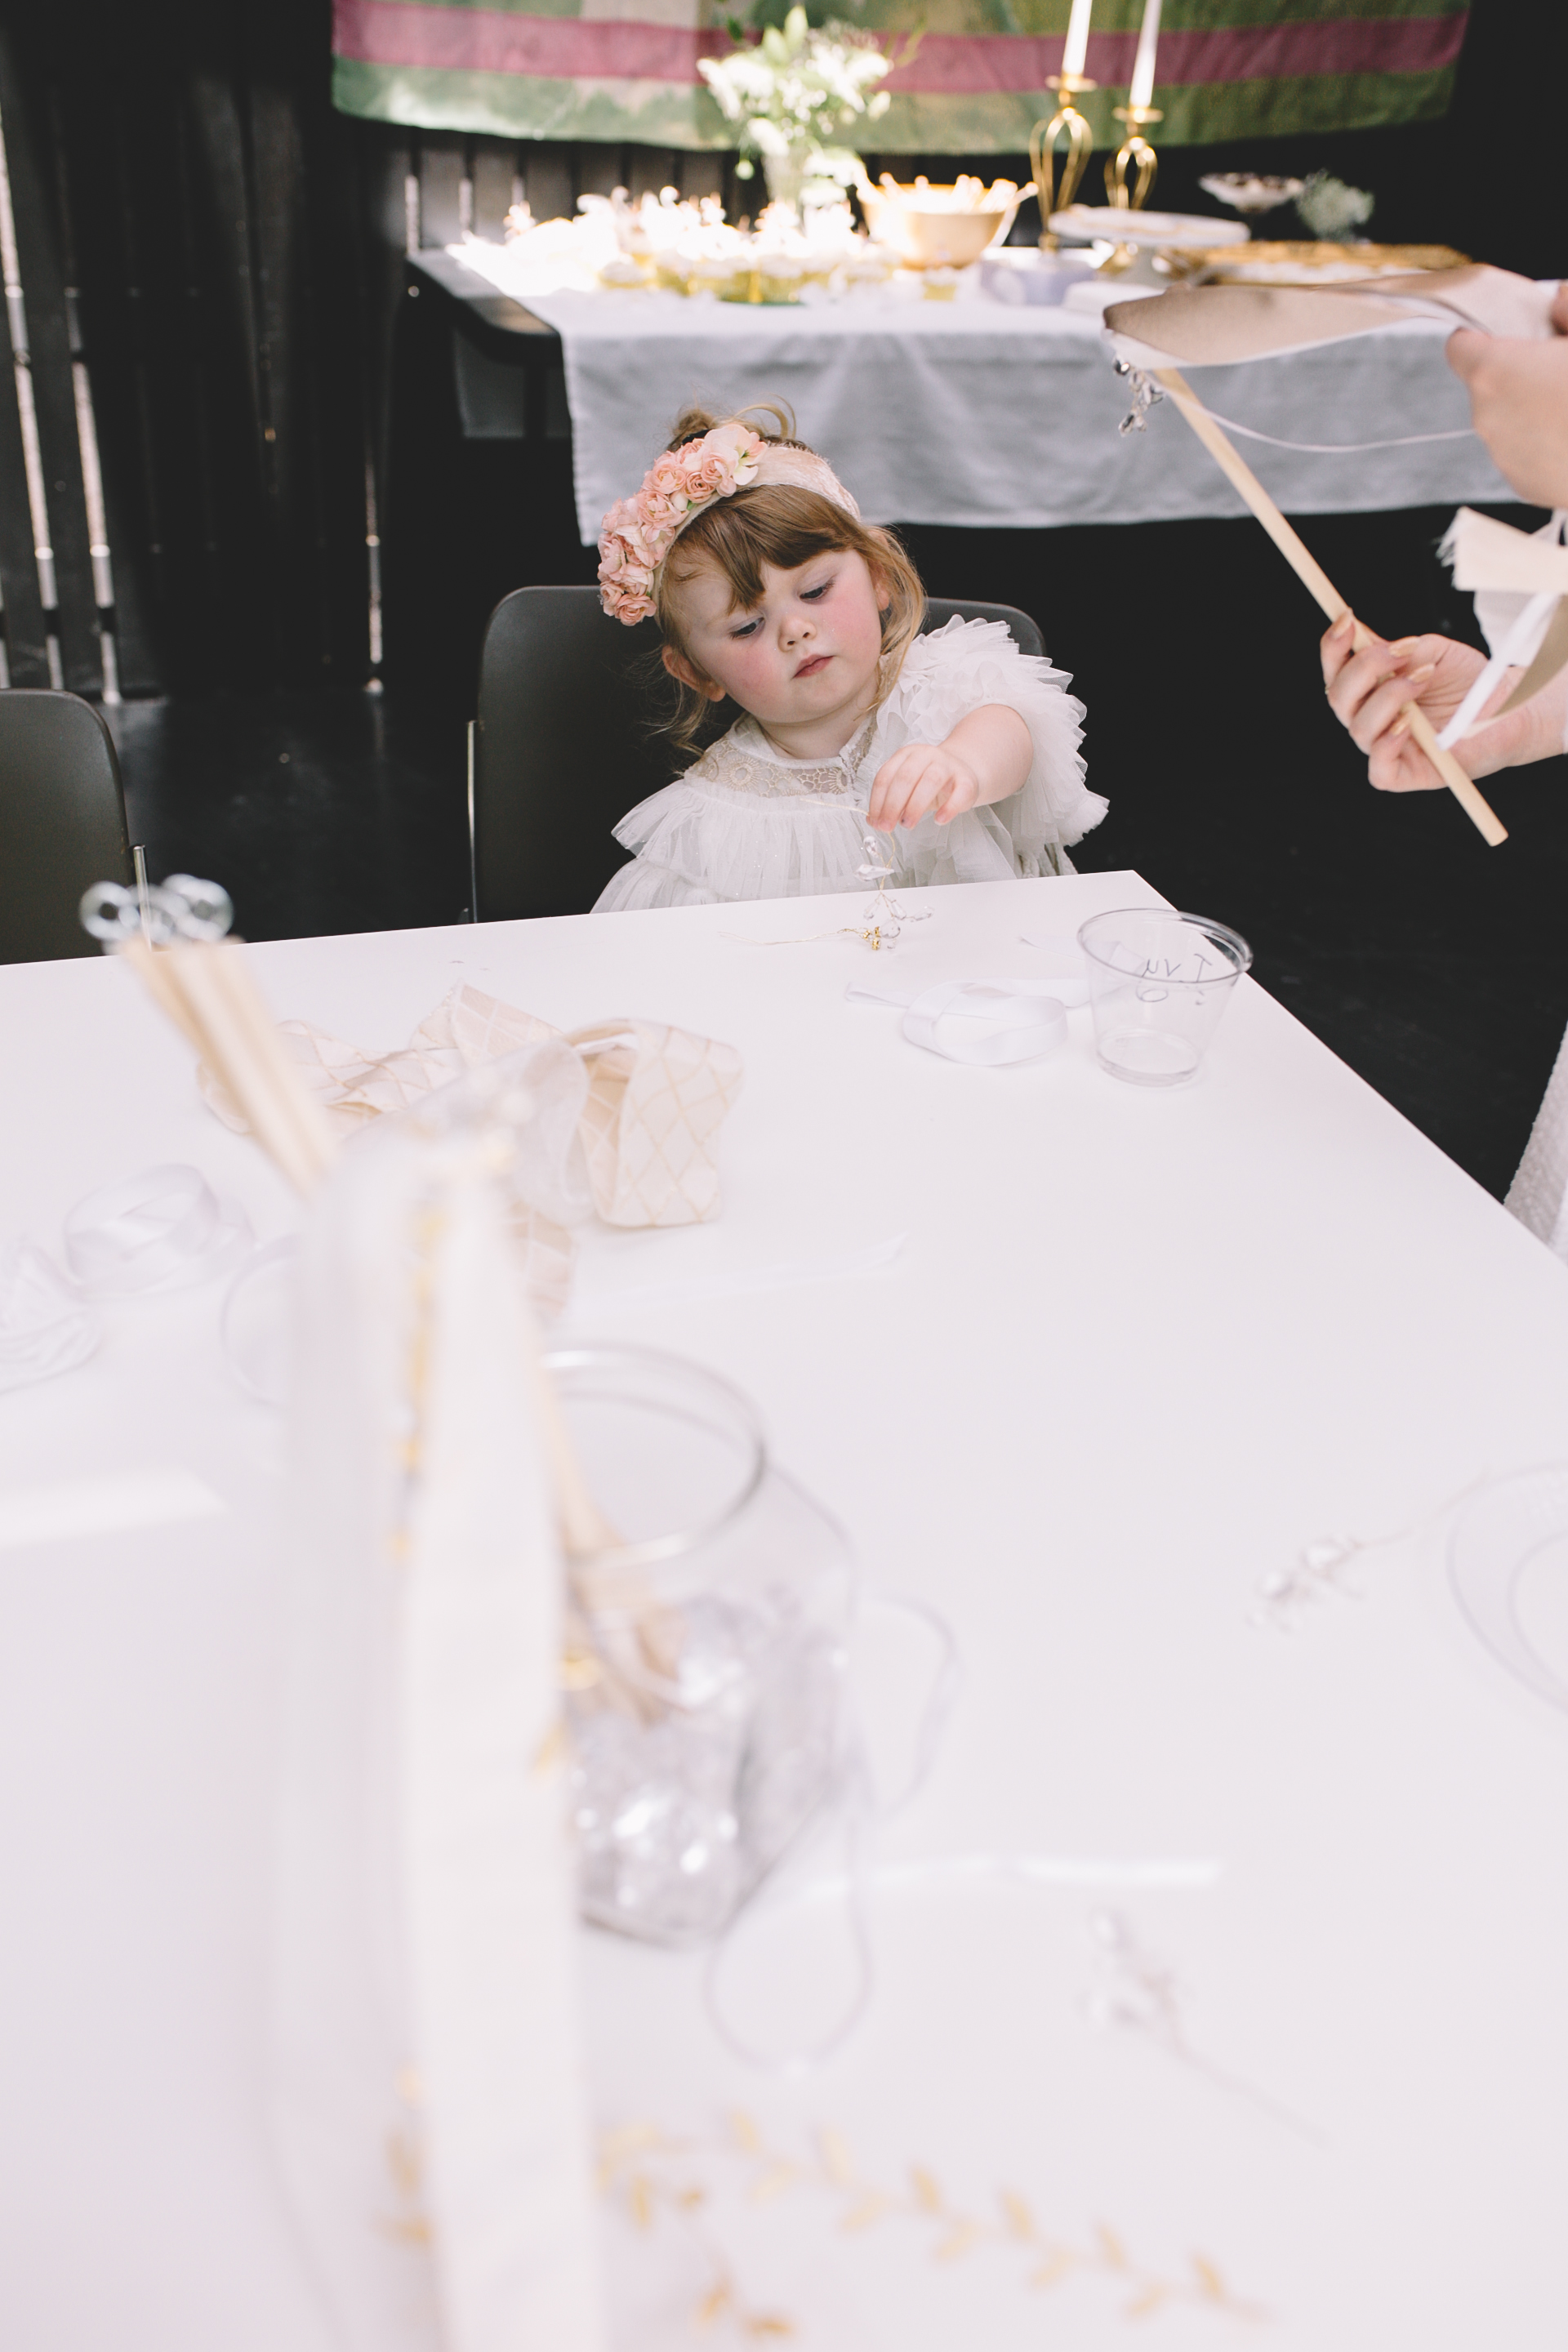 Lilias' Four Year Old Swan Lake Ballet Birthday Party  (40 of 72).jpg